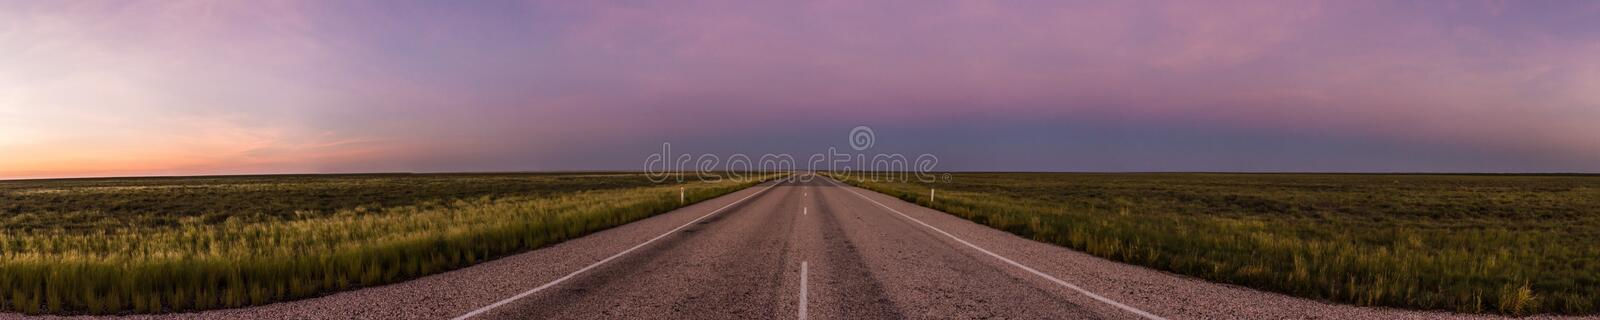 panorama of a straight road through the outback of Australia, after a beautiful sunset, Nothern territory stock images